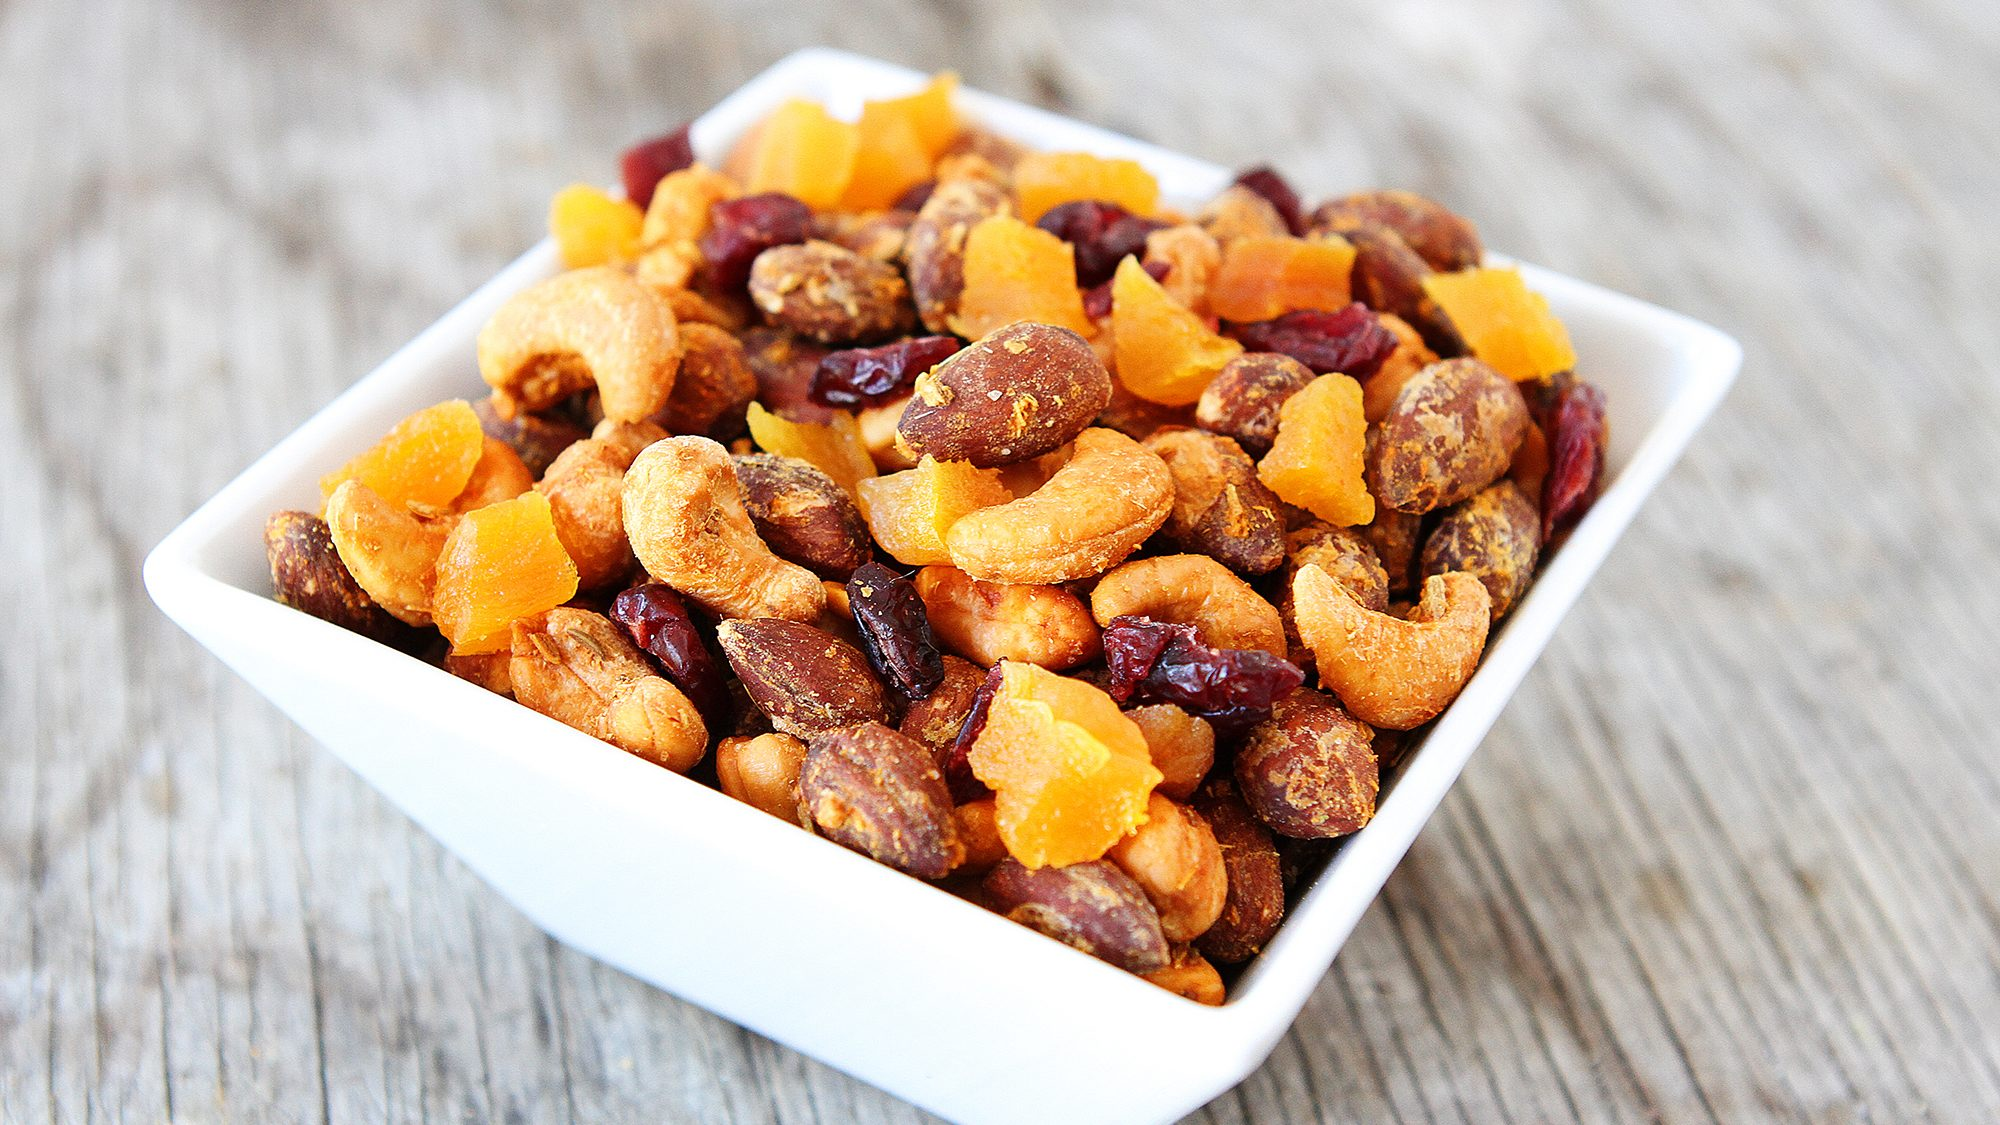 McCormick Gourmet Peri Peri and Fennel Spiced Nuts with Dried Fruits